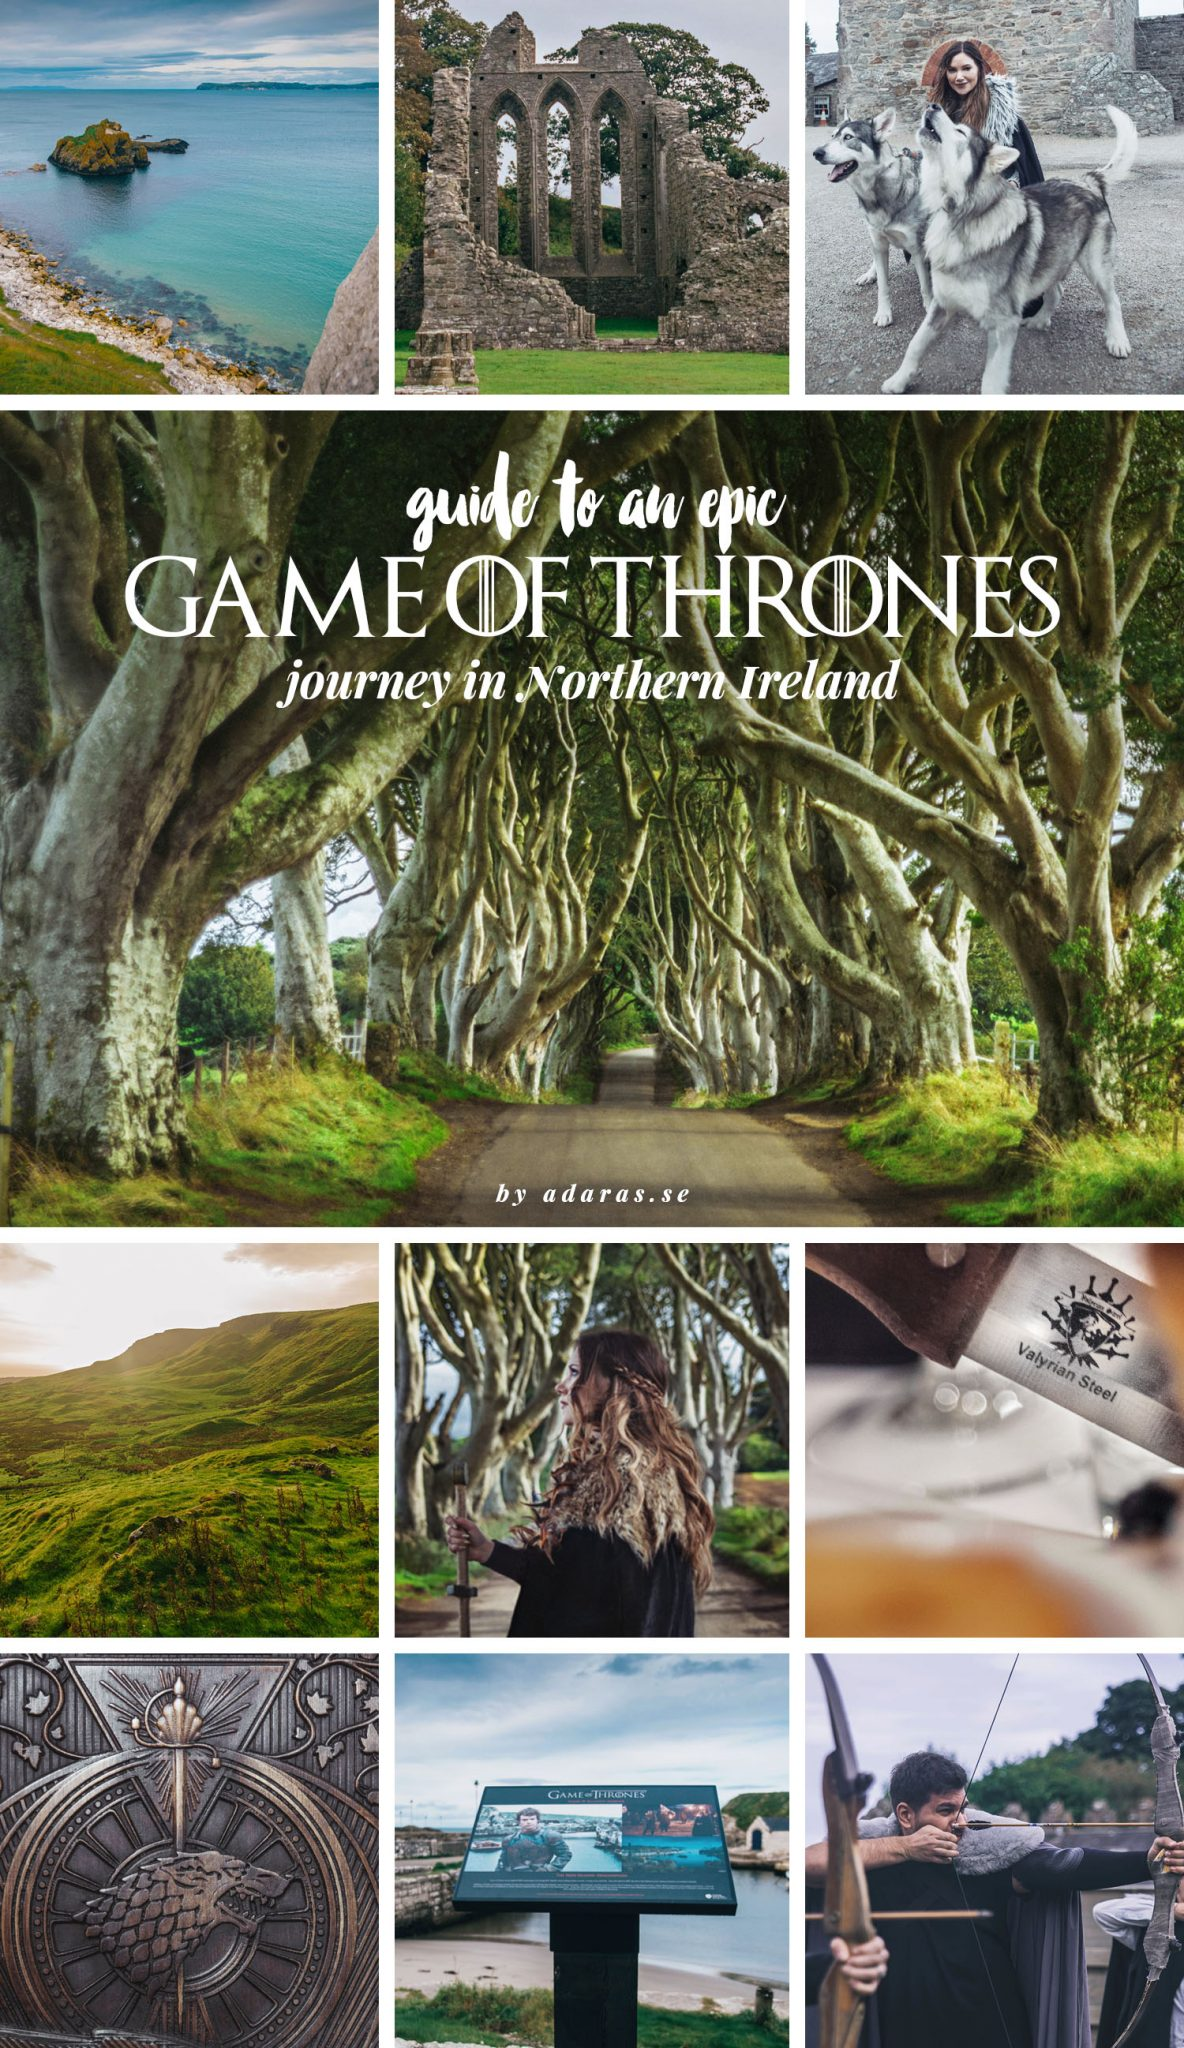 Epic Game of Thrones Journey in Northern Ireland